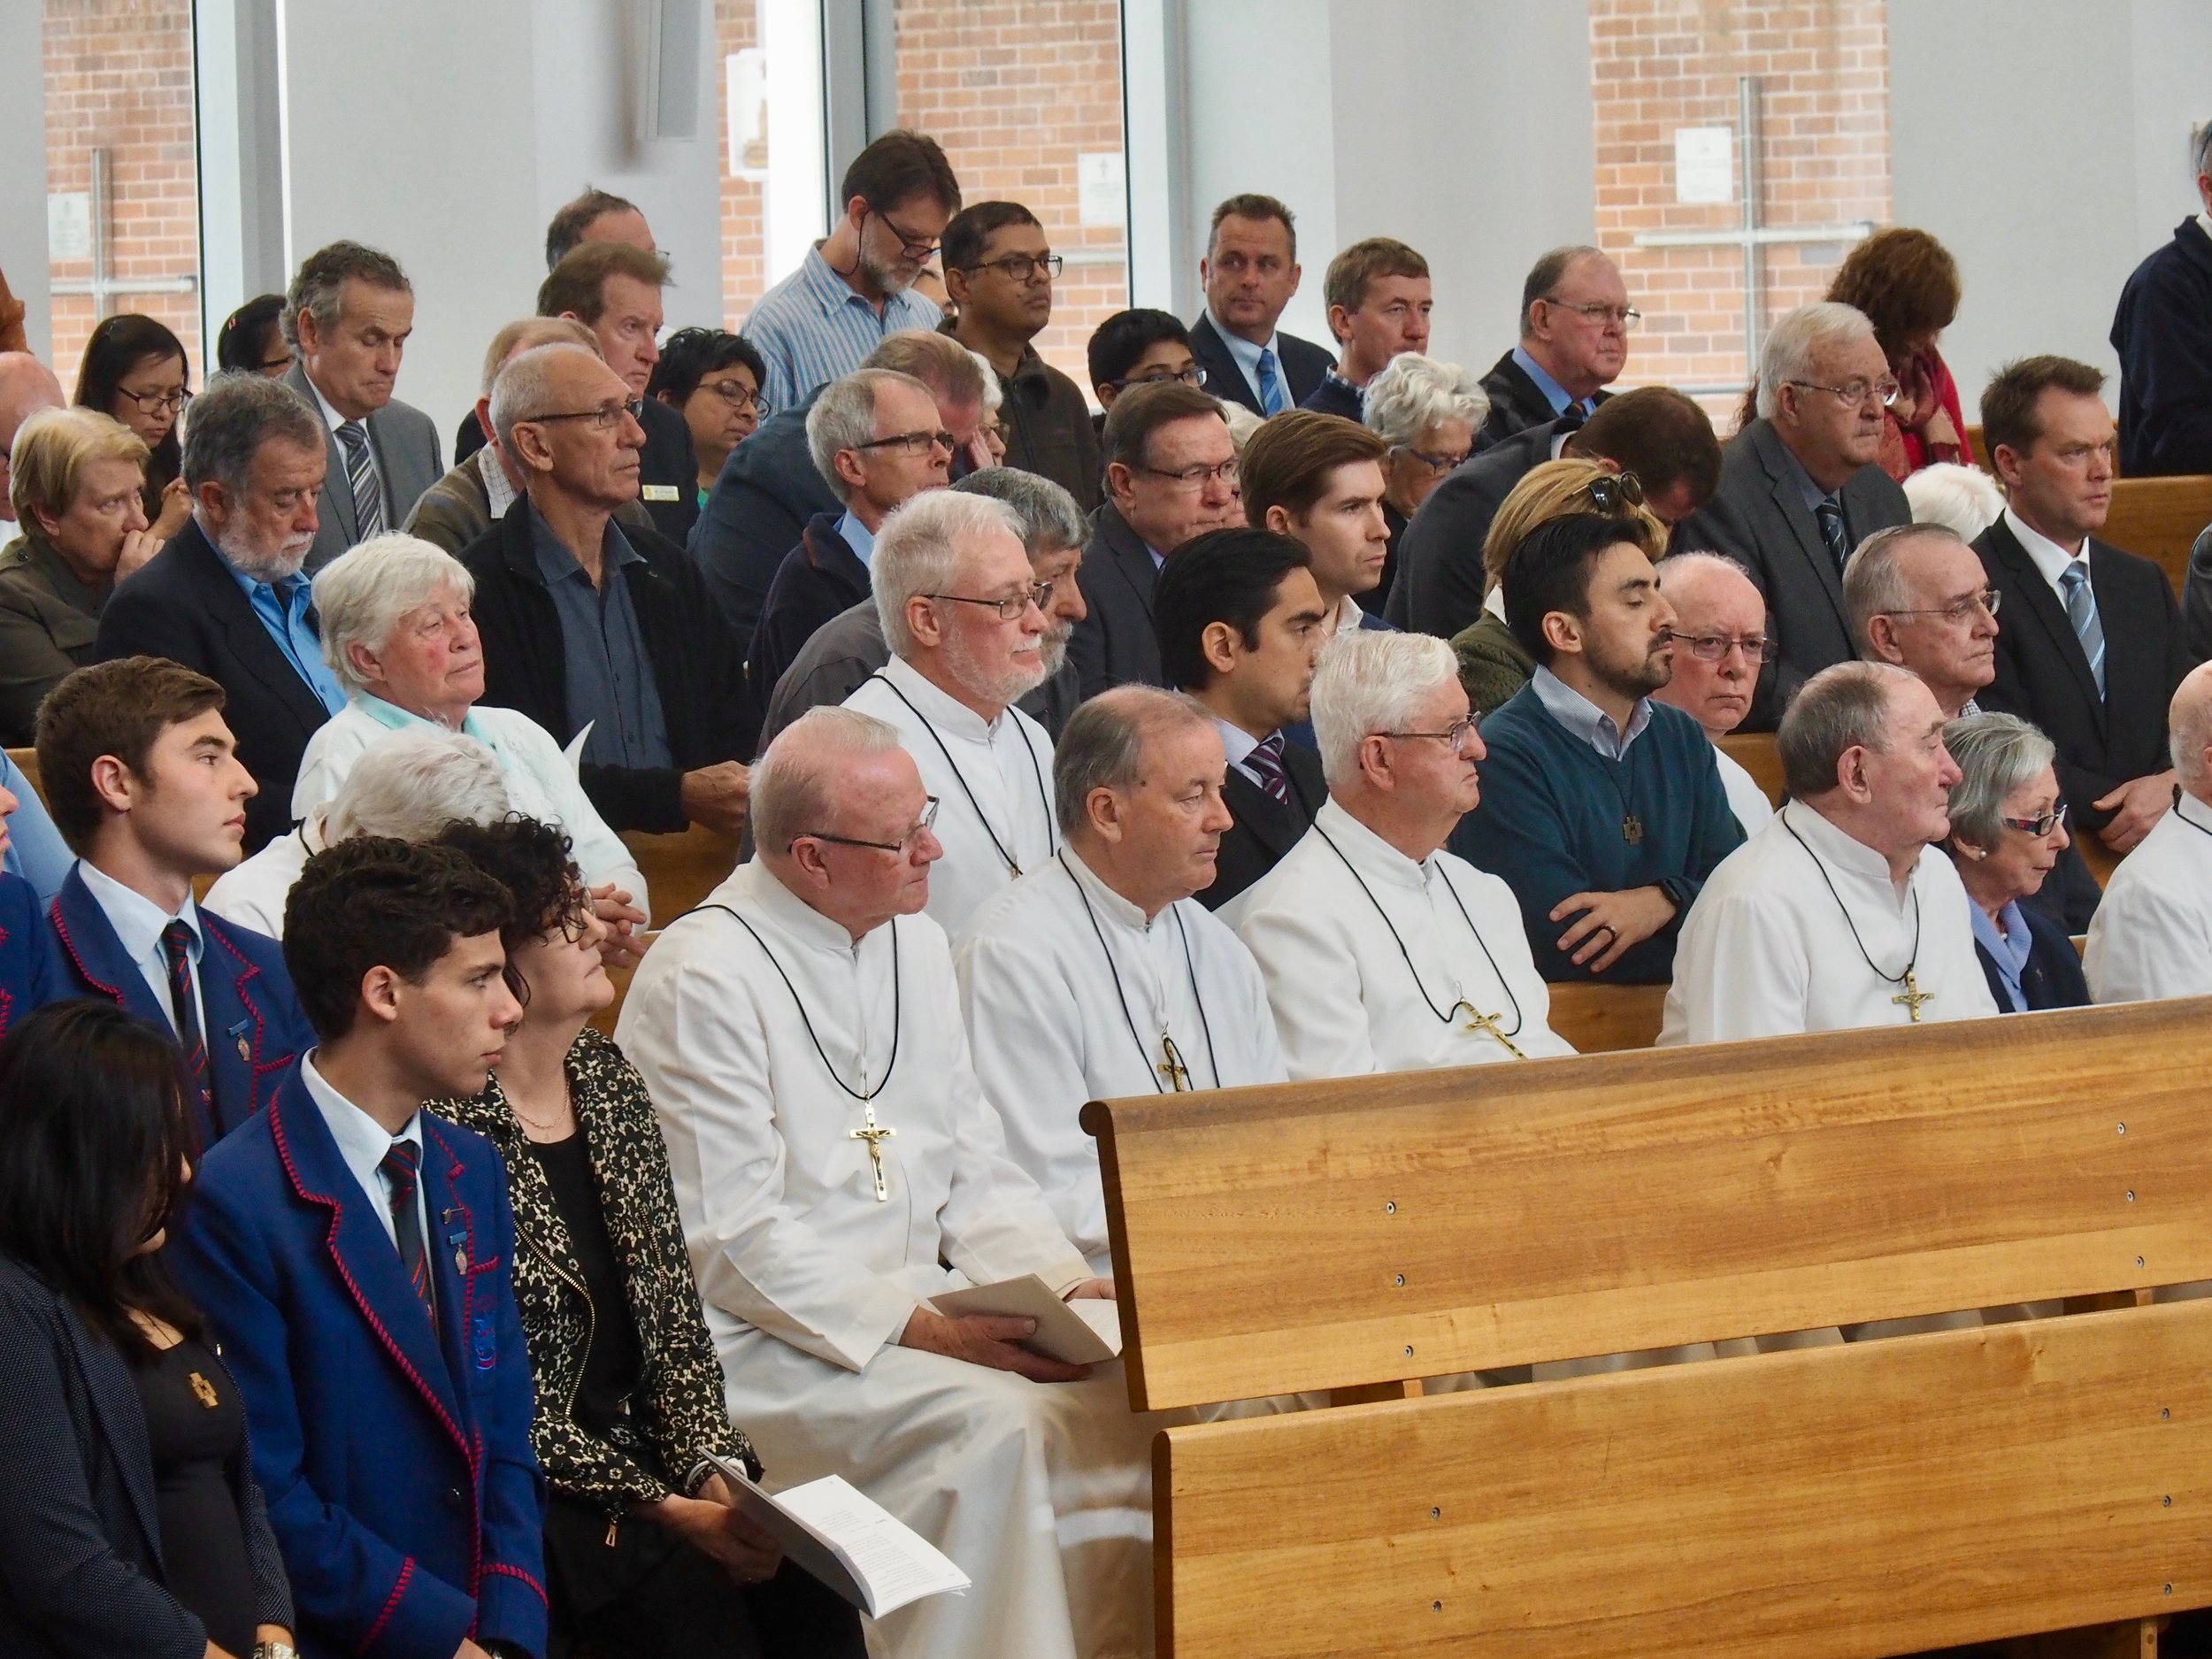 Bicentenary Mass Sydney 12 Aug 2017 Photos by Paul Harris 00042.jpg